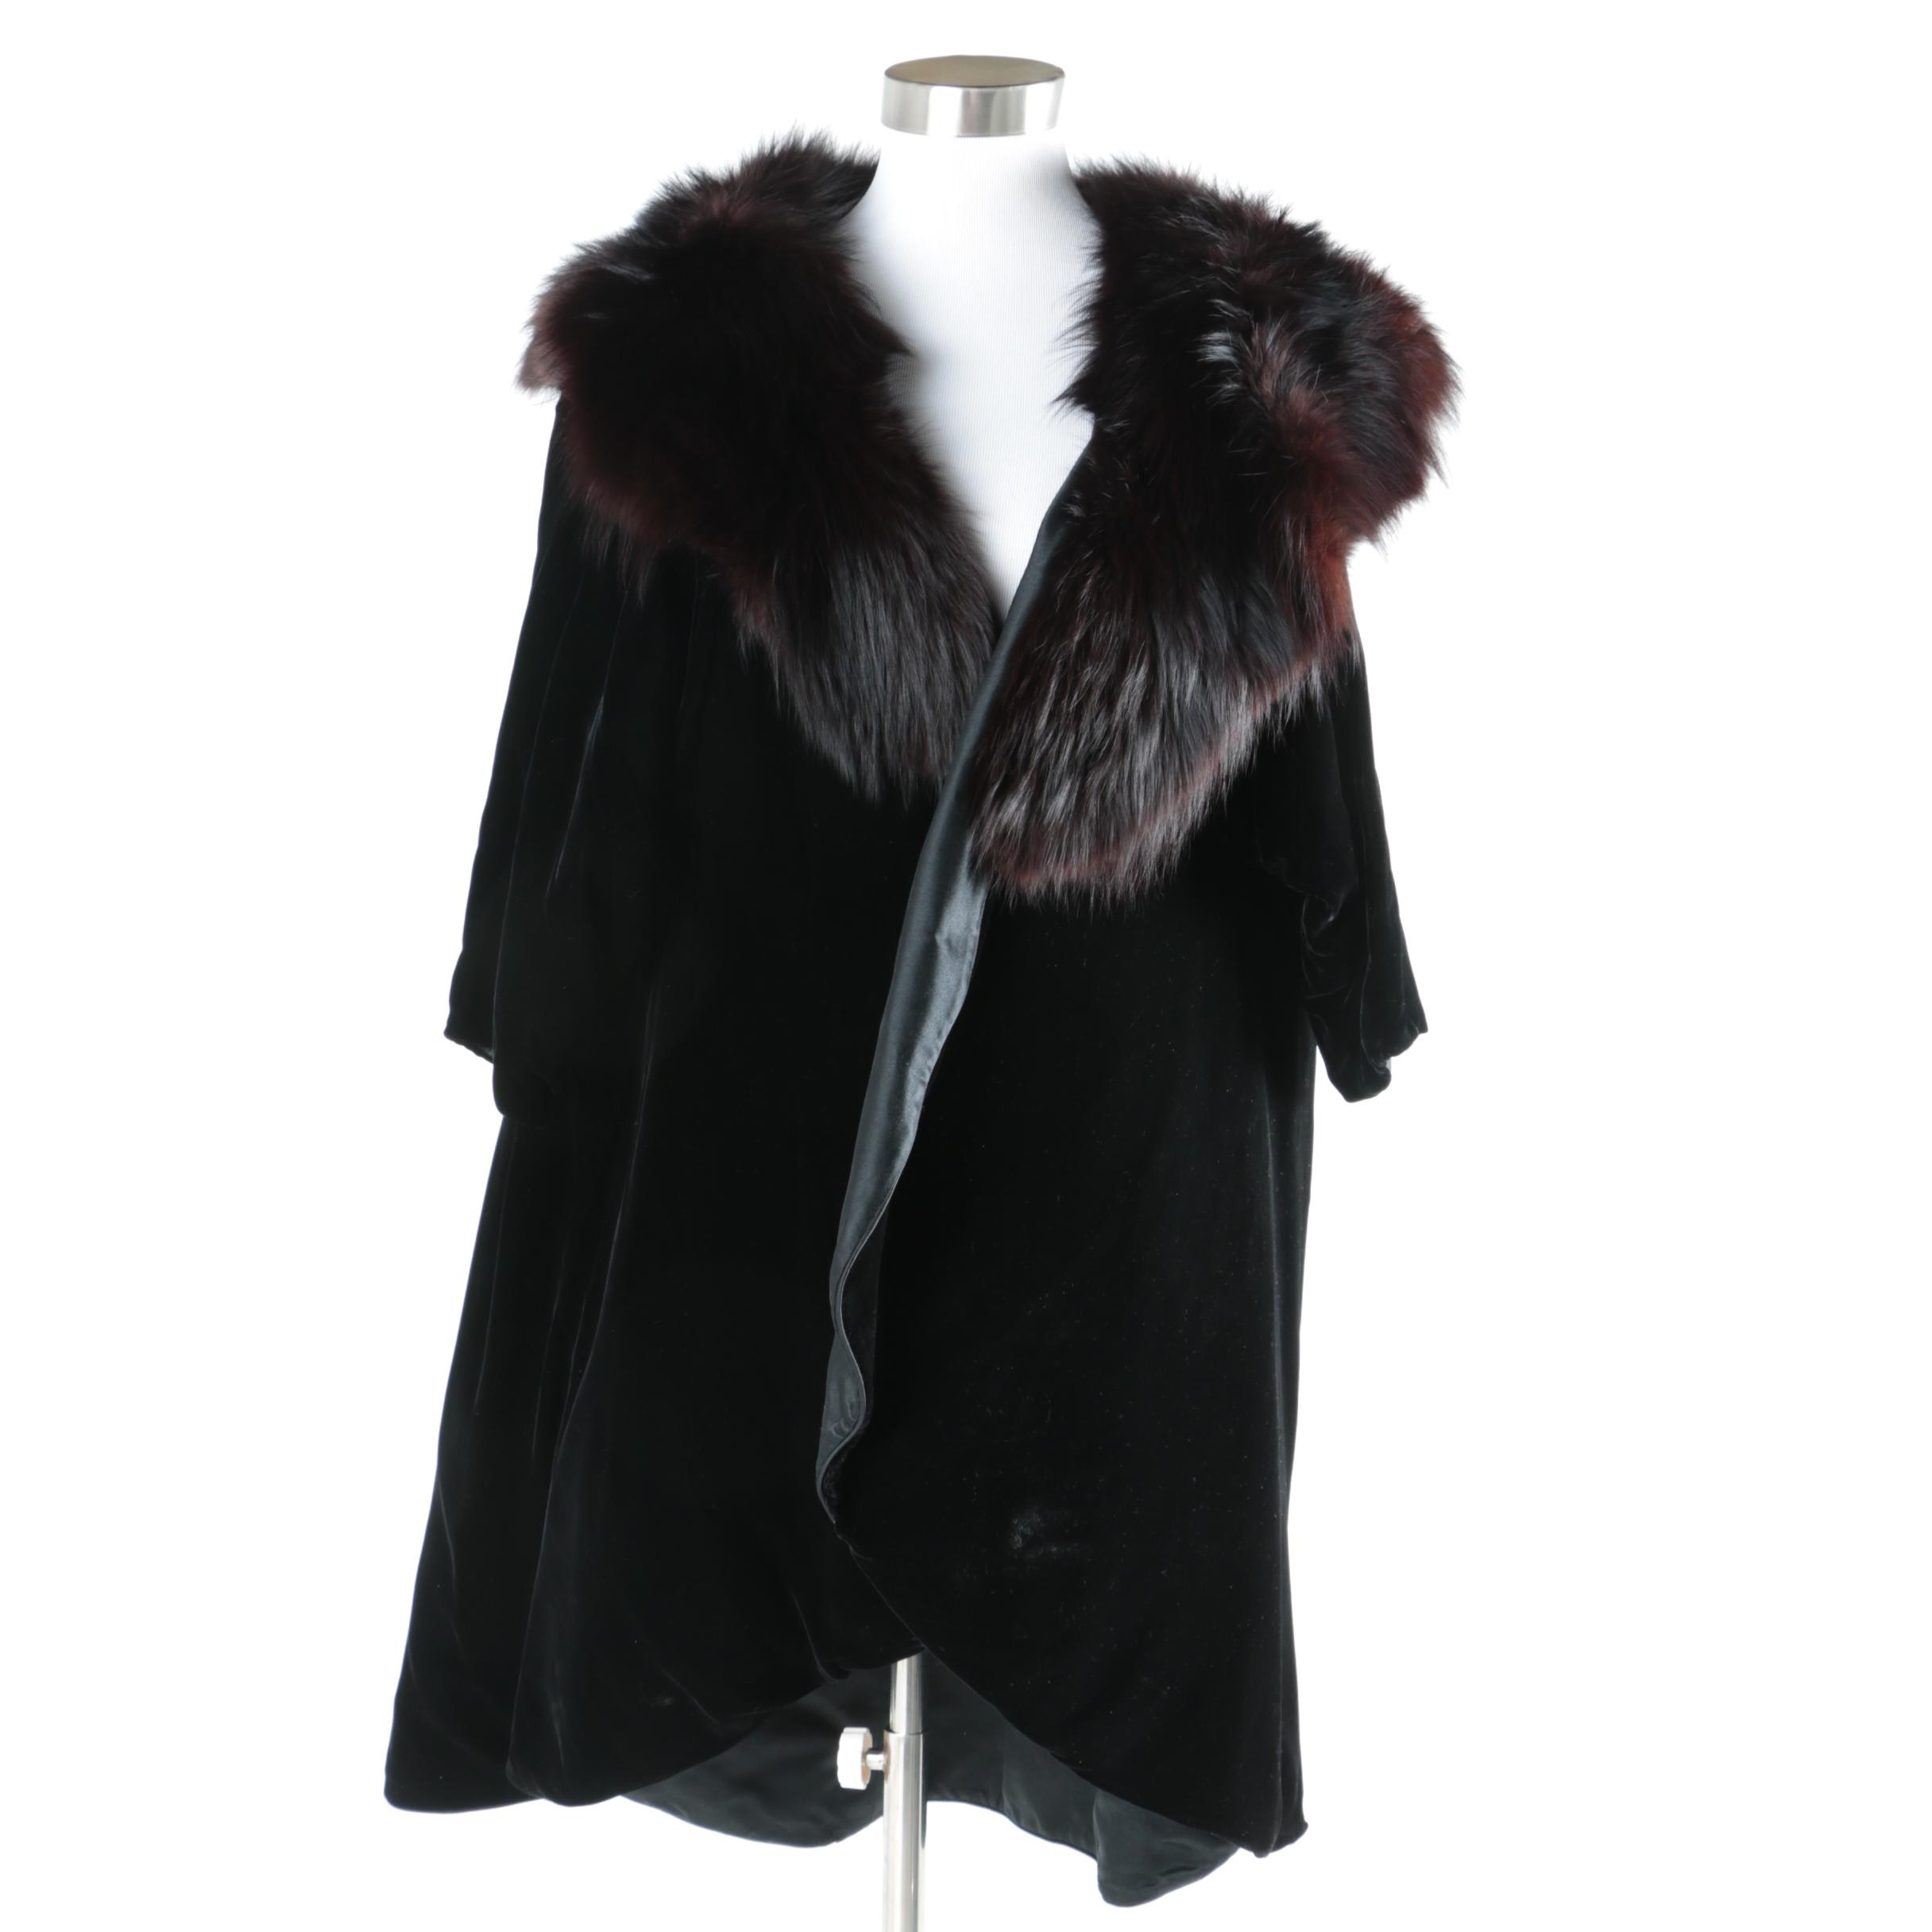 1950s Vintage Mr. Blackwell Designs Black Coat with a Dyed Fox Fur Collar